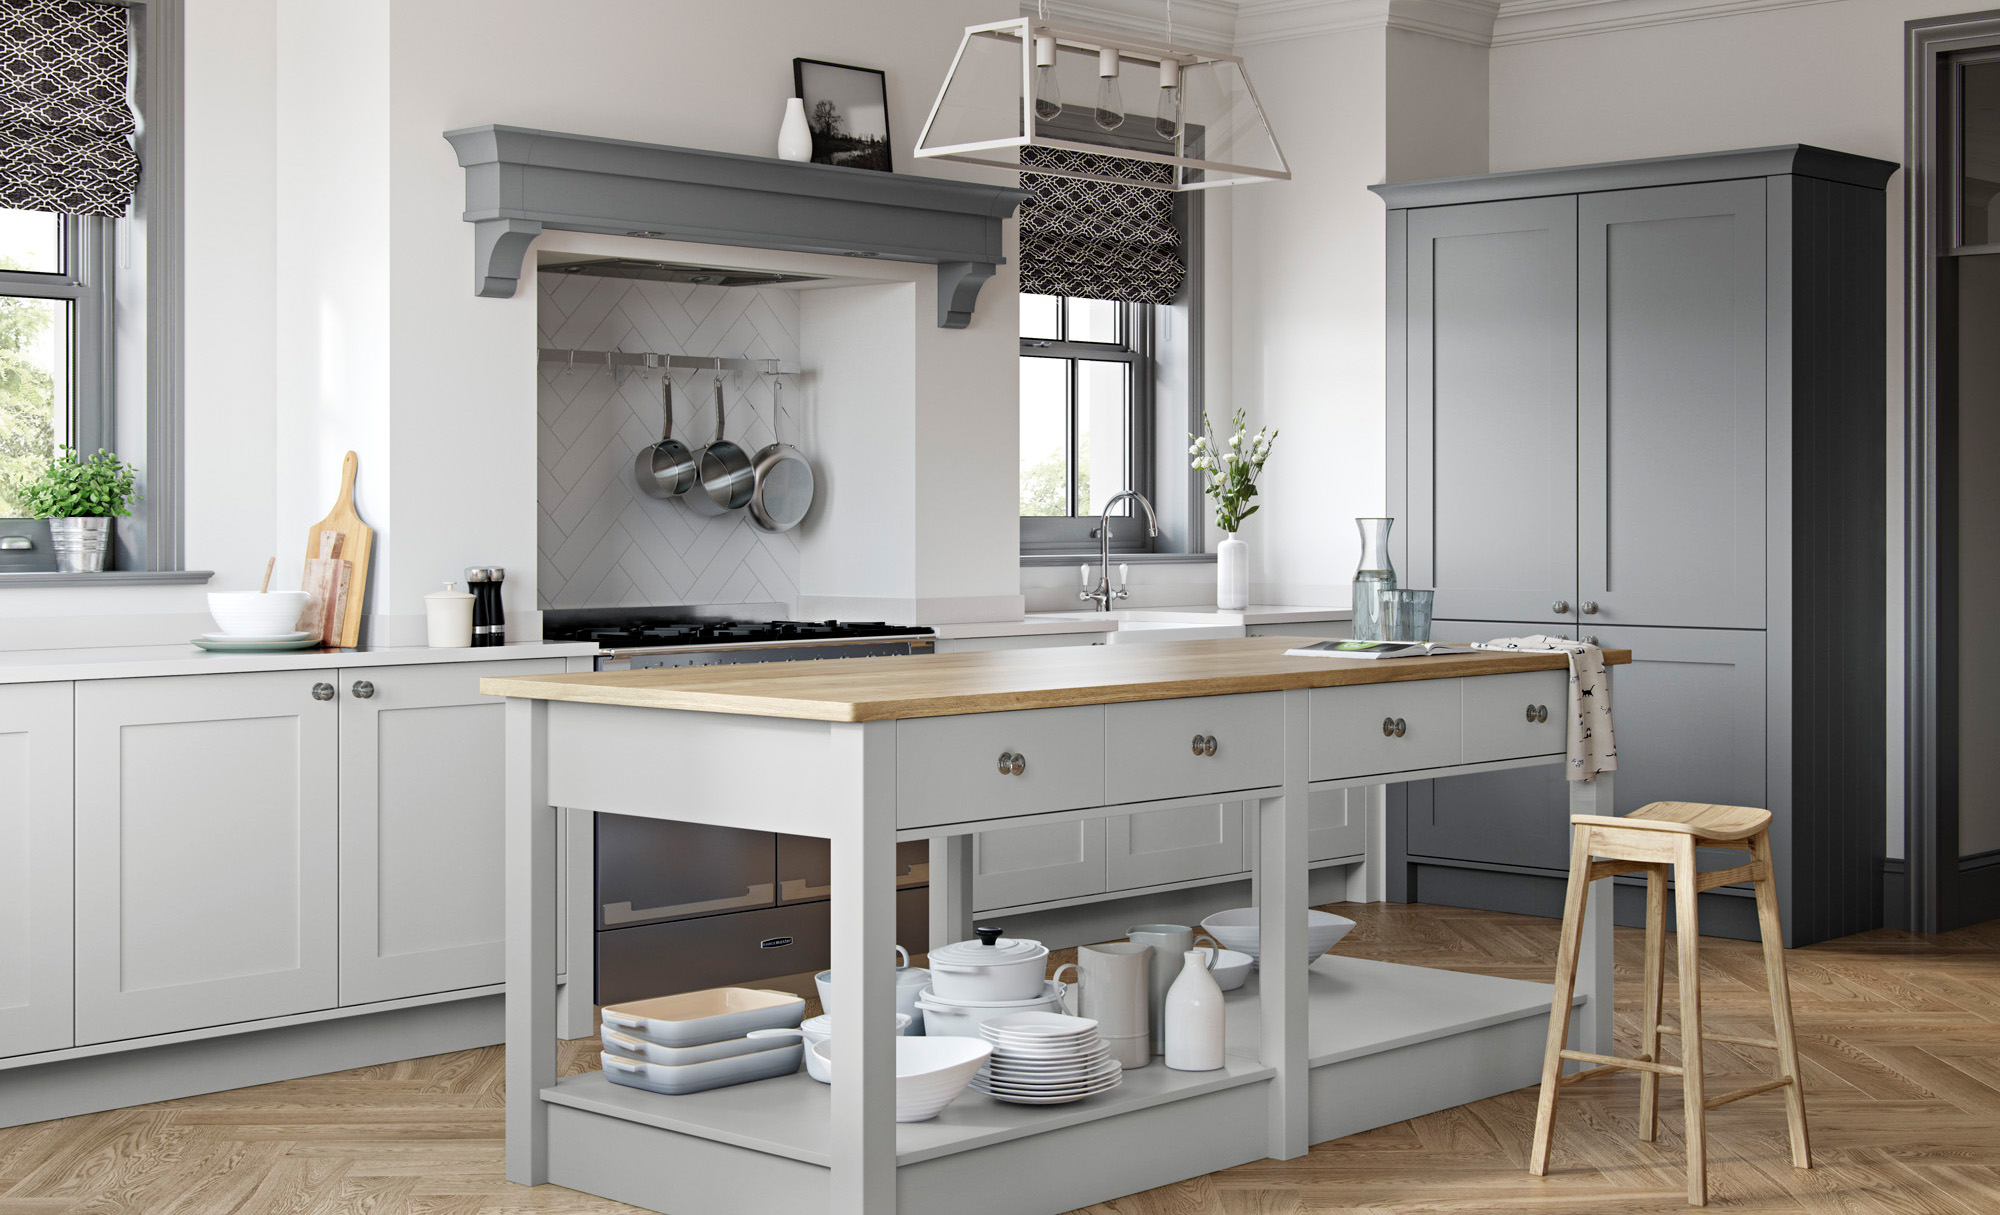 Georgia Smooth Painted Shaker Kitchen in Light Grey & Dust Grey